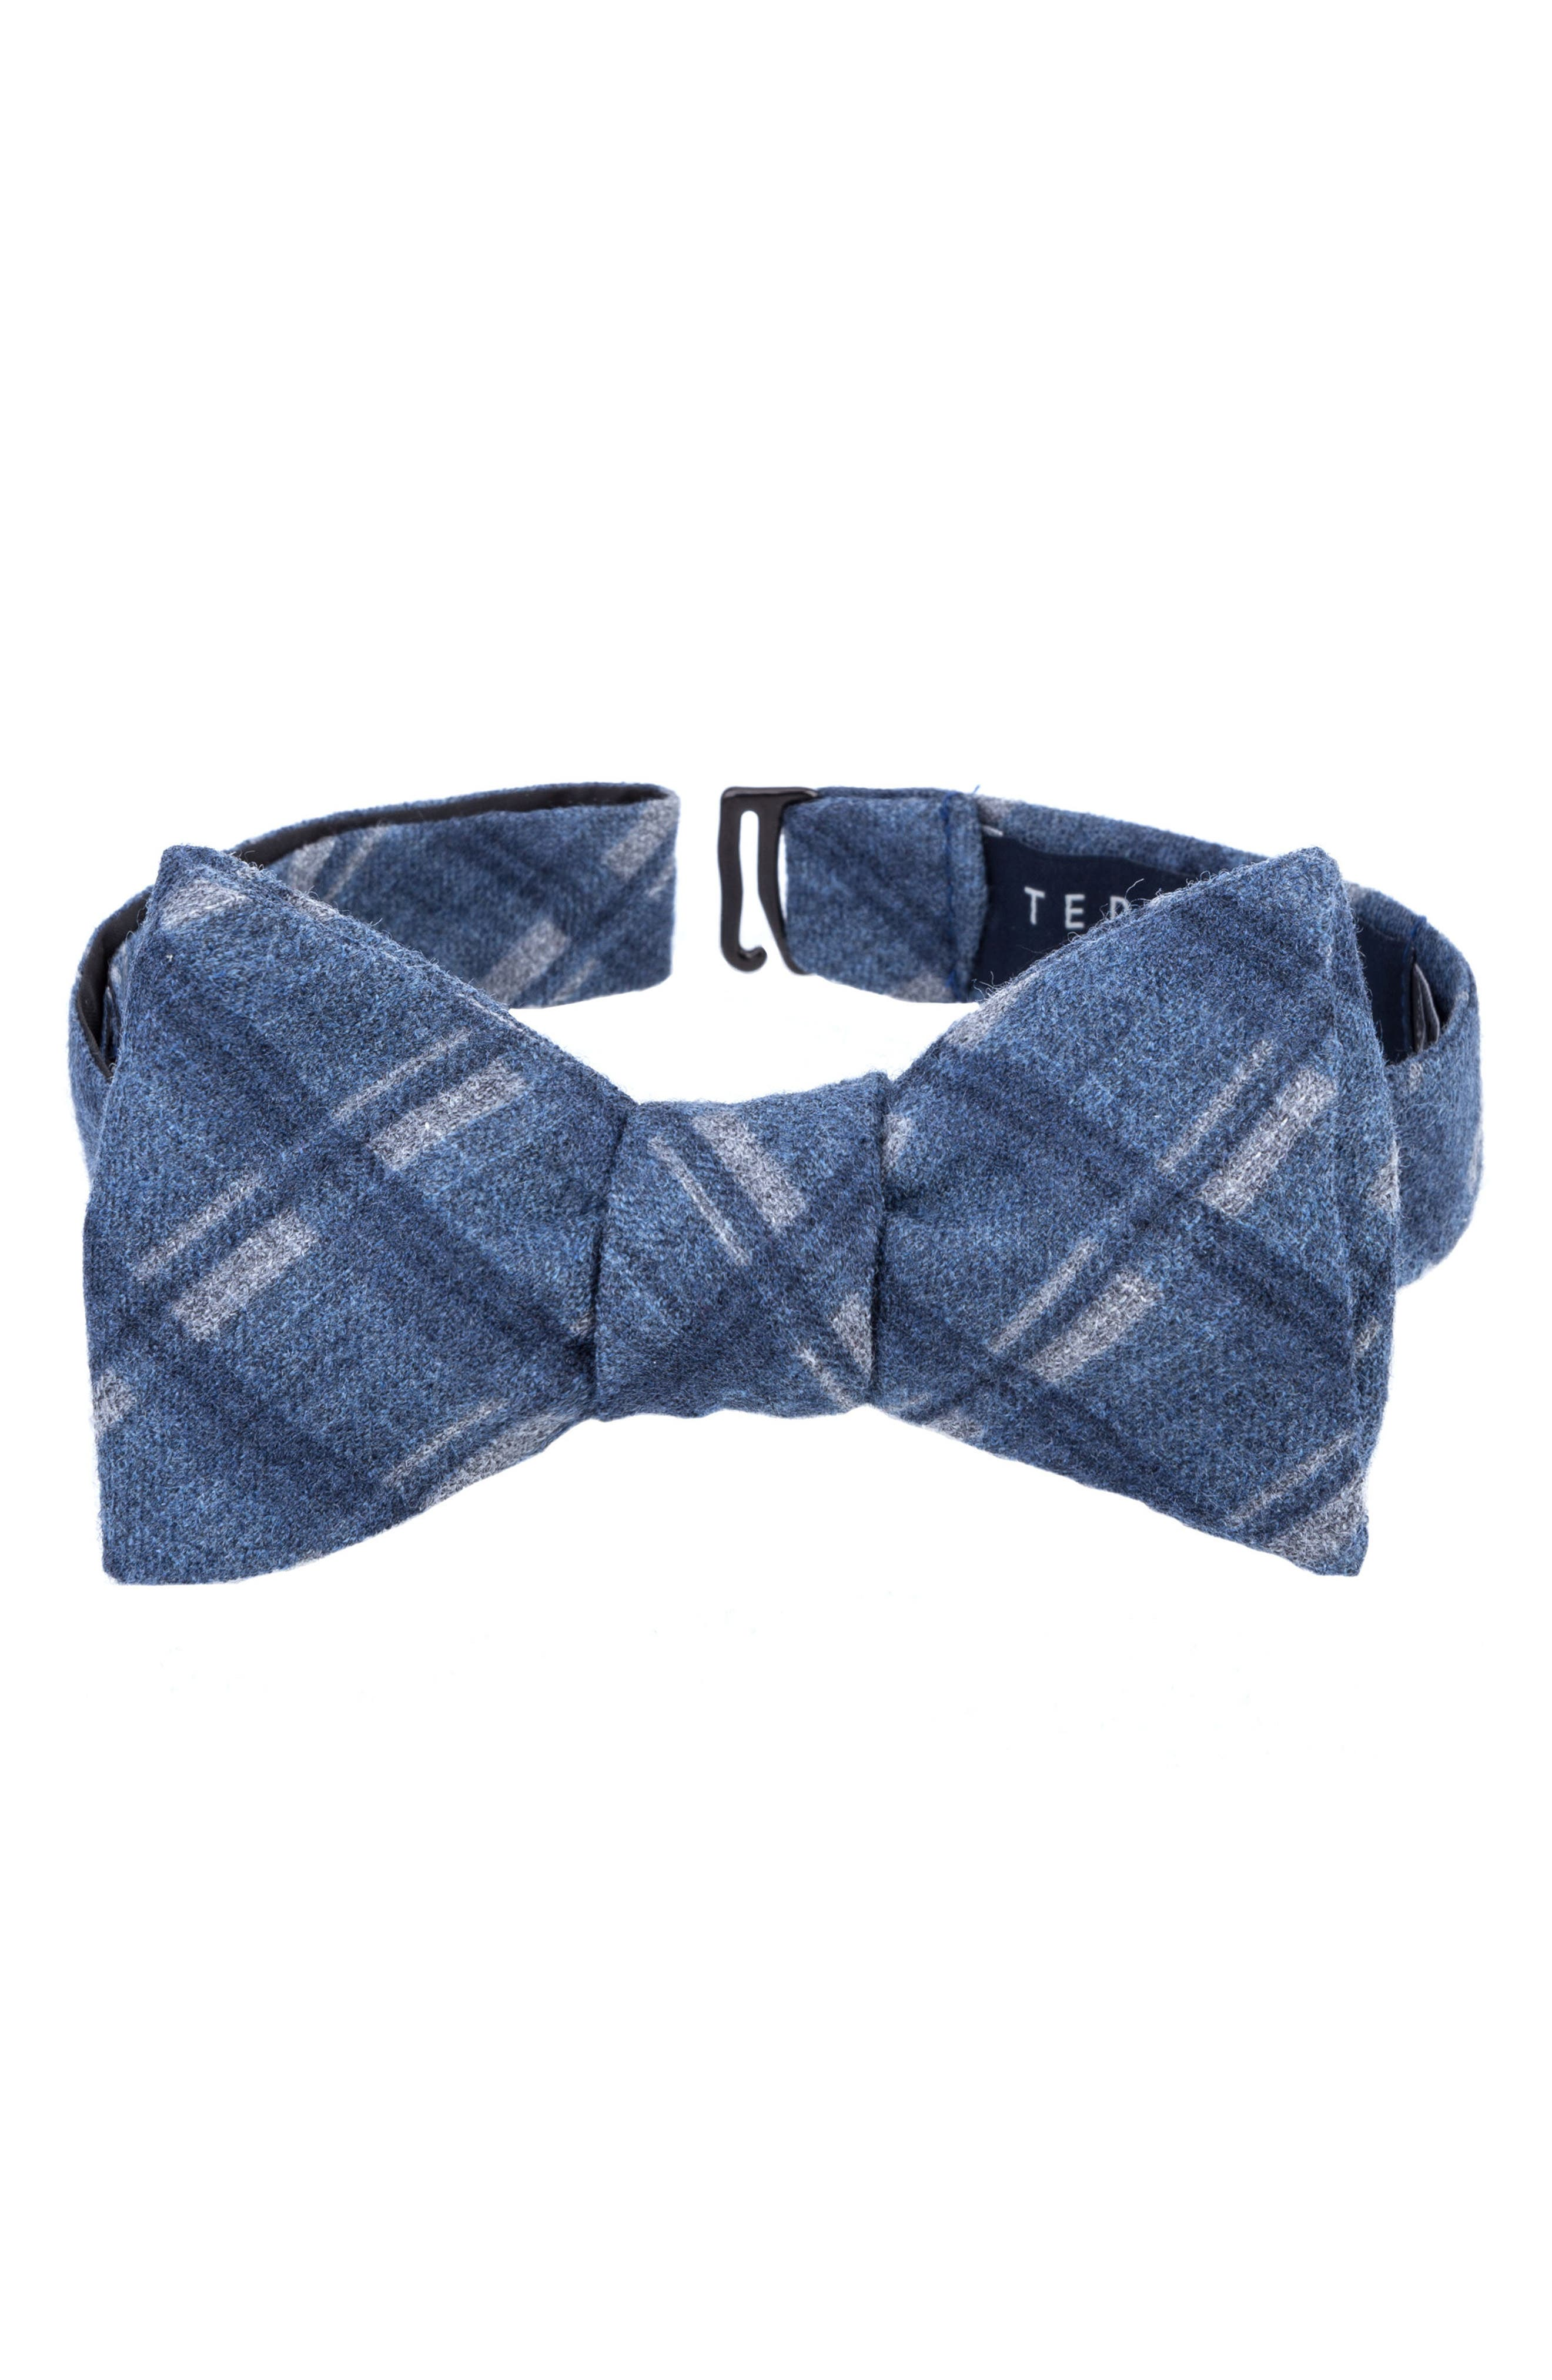 Wool Bow Tie,                         Main,                         color, Blue